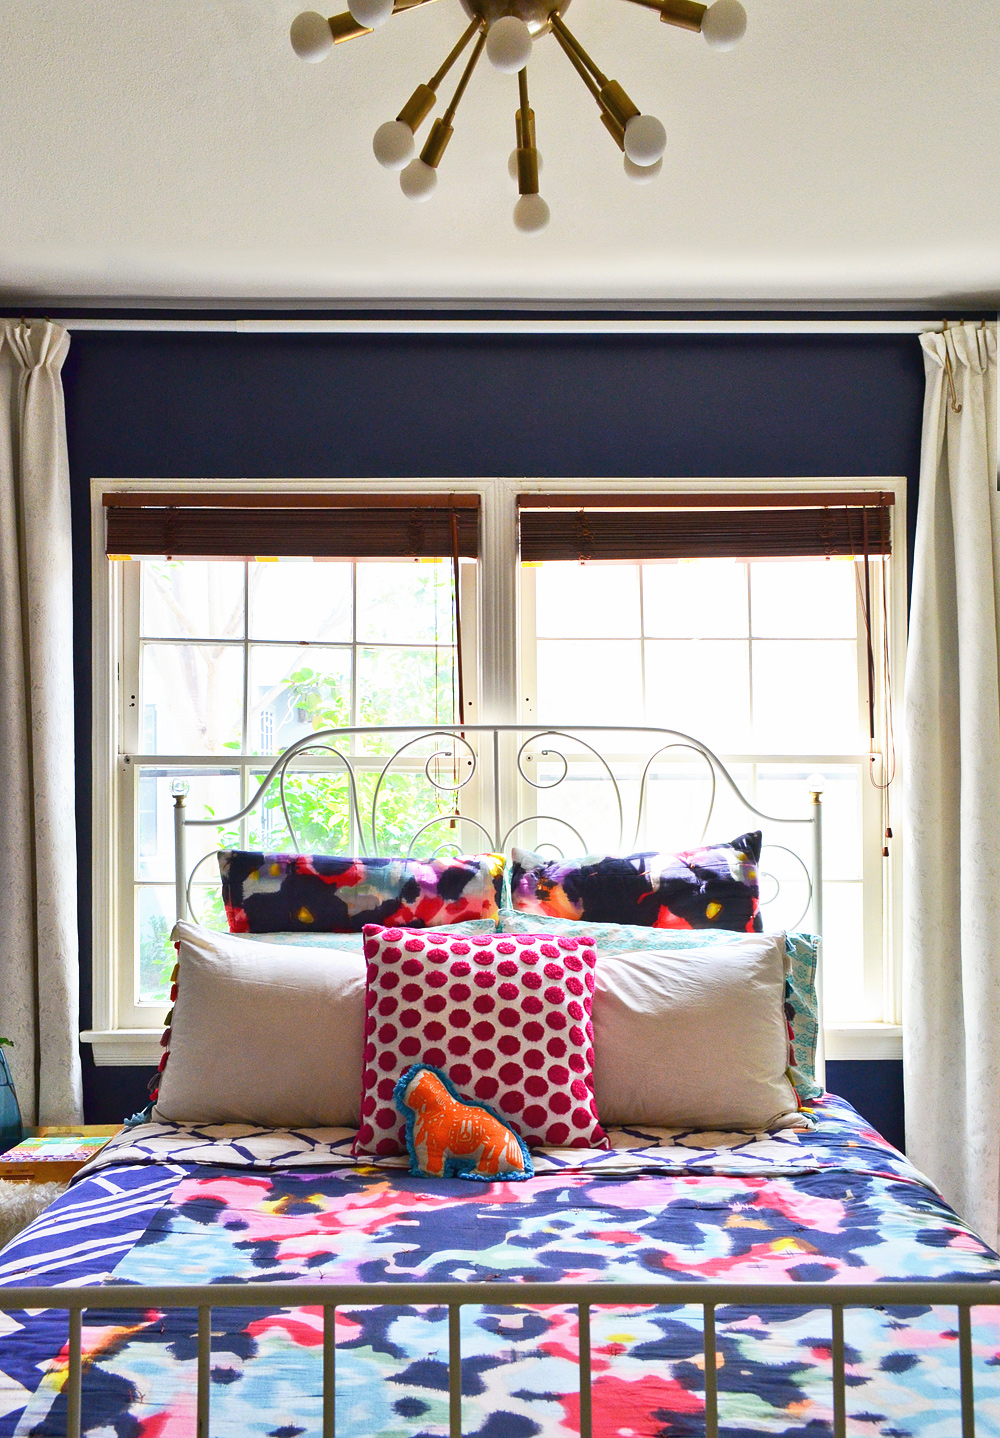 Anthropologie-Watercolor-Quilt-IKEA-bed